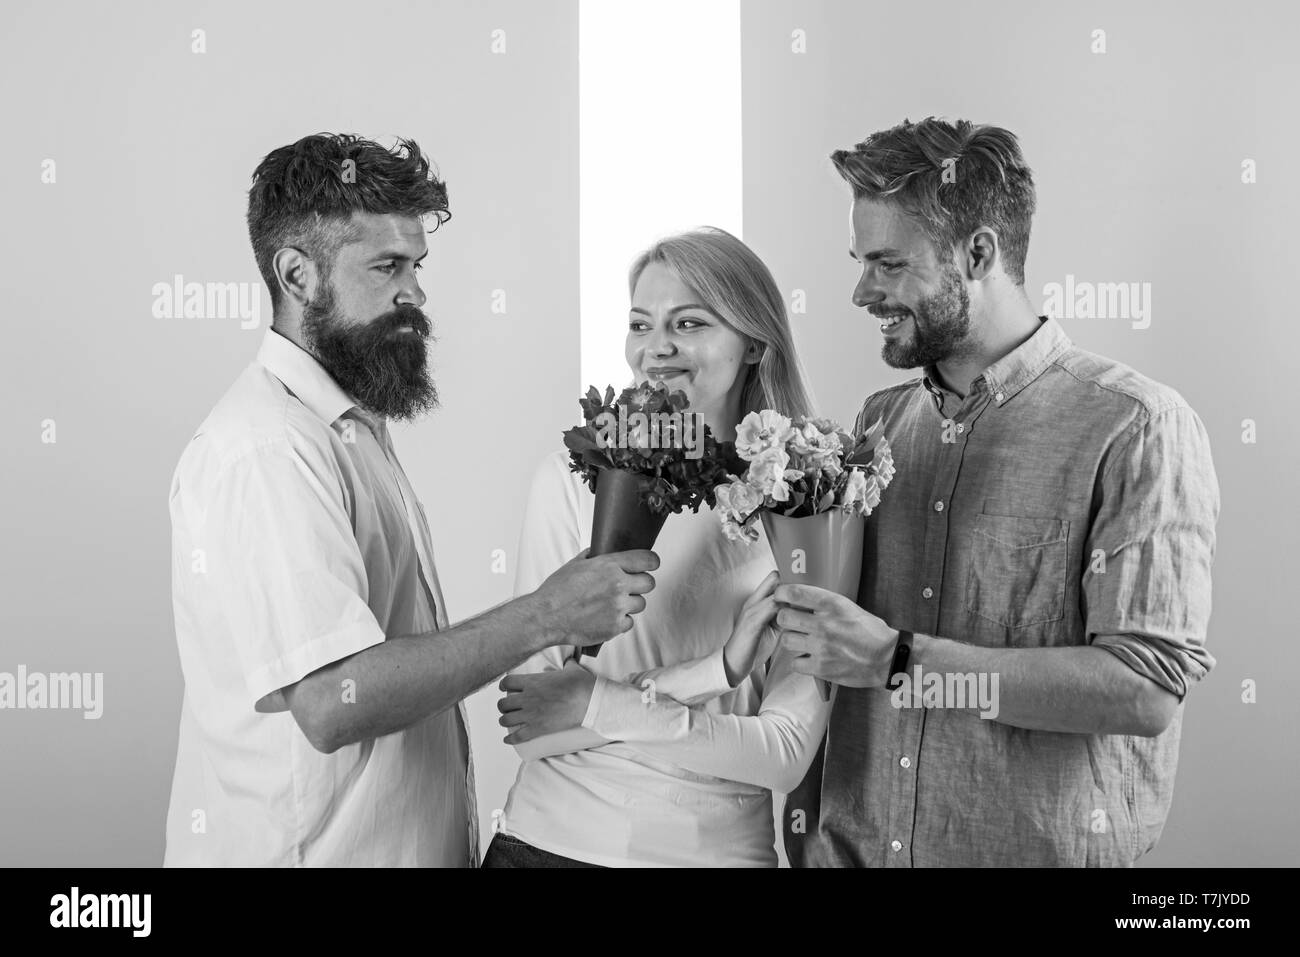 Girl popular receive lot men attention. Men competitors with bouquets flowers try conquer girl. Love triangle. Woman smiling has opportunity choose partner. Girl happy likes to be in middle attention. - Stock Image